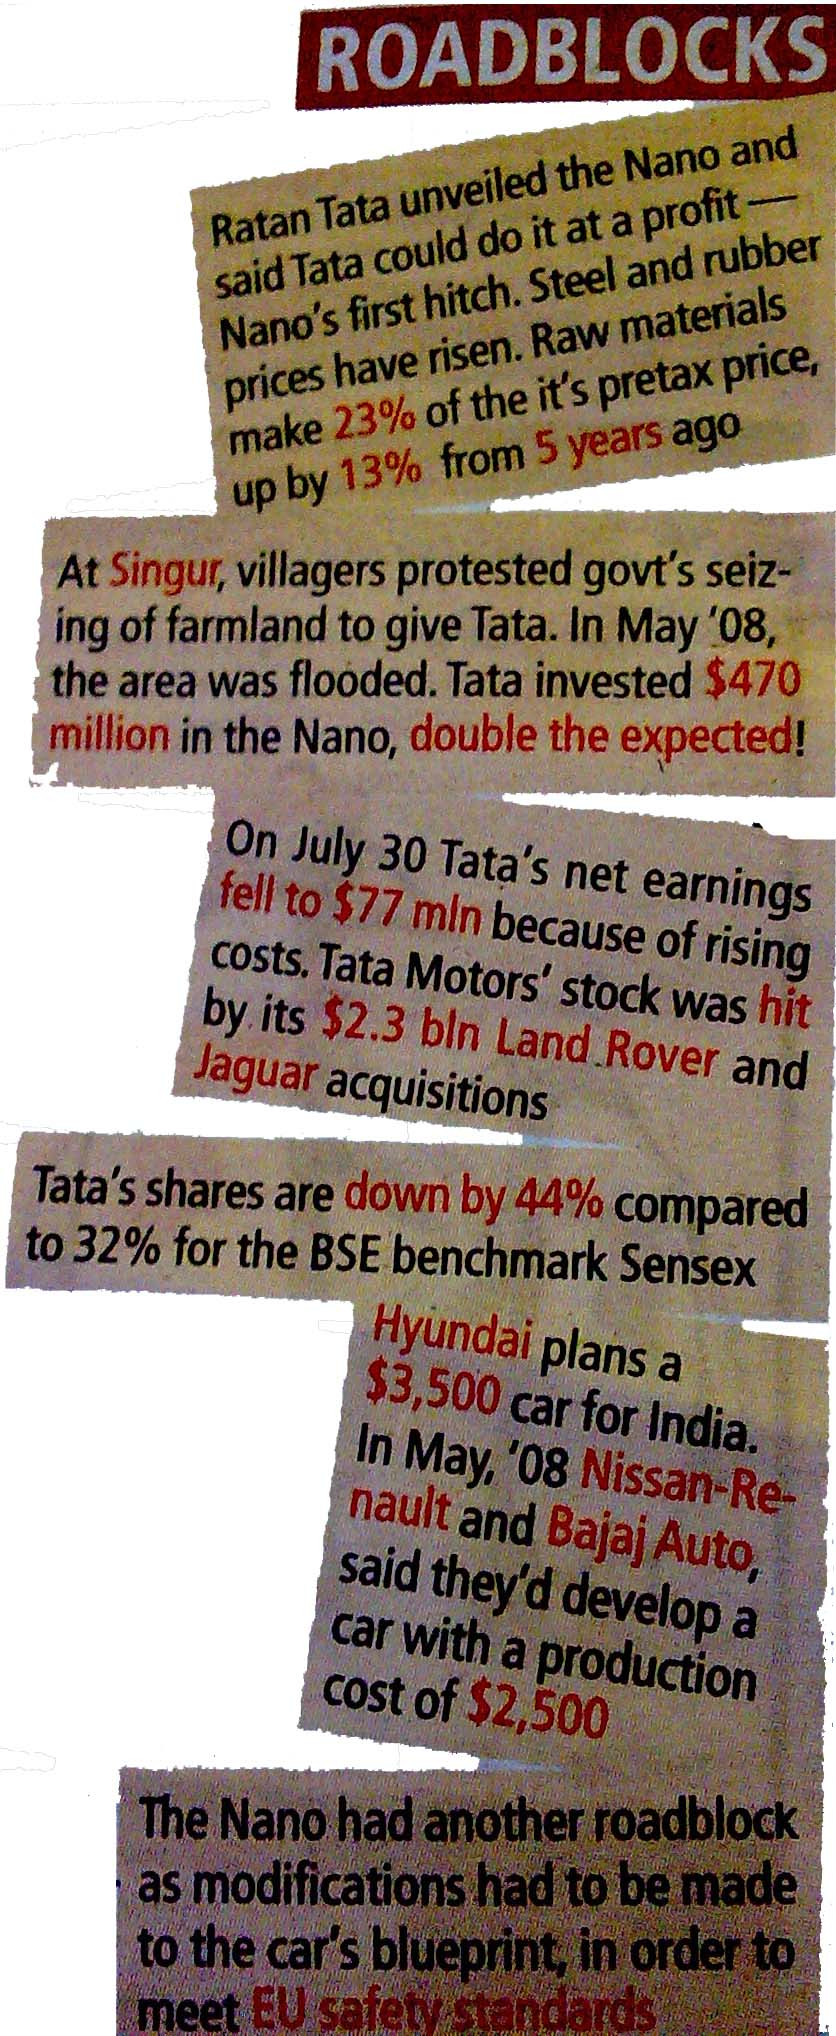 Will Tata's Nano come out to play on Republic day?